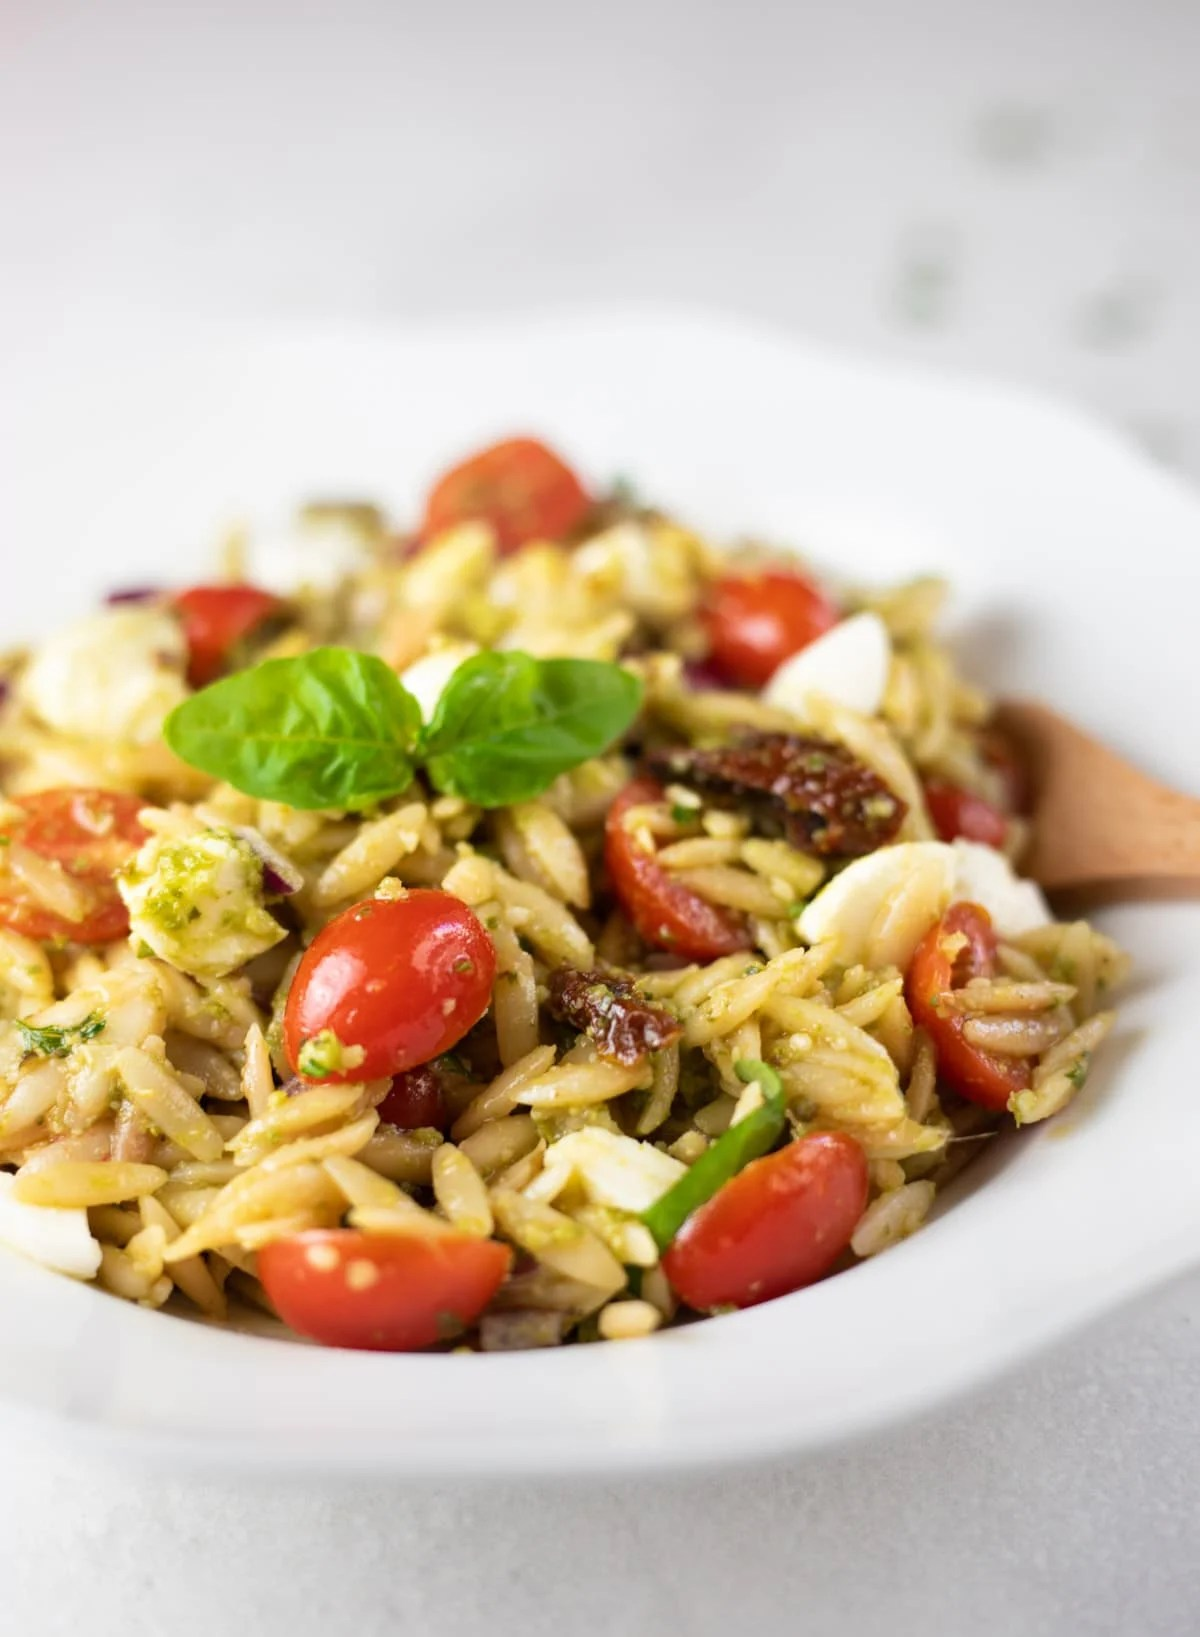 Closeup of pasta salad with orzo, cherry tomatoes, mozzarella and basil leaves